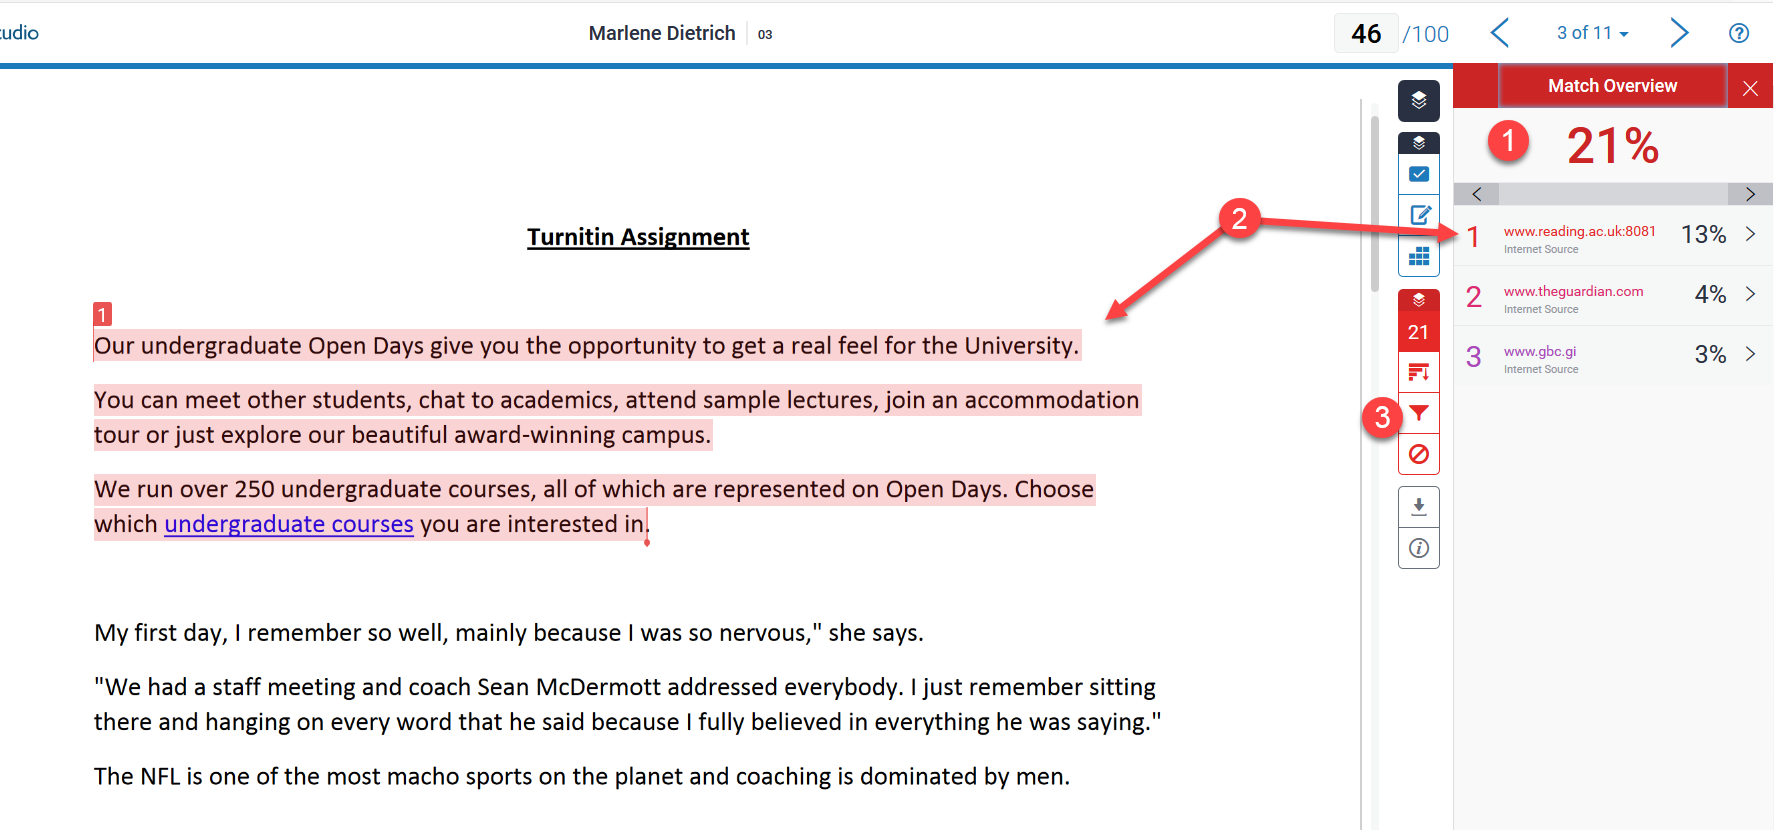 Essay writing service turnitin uk